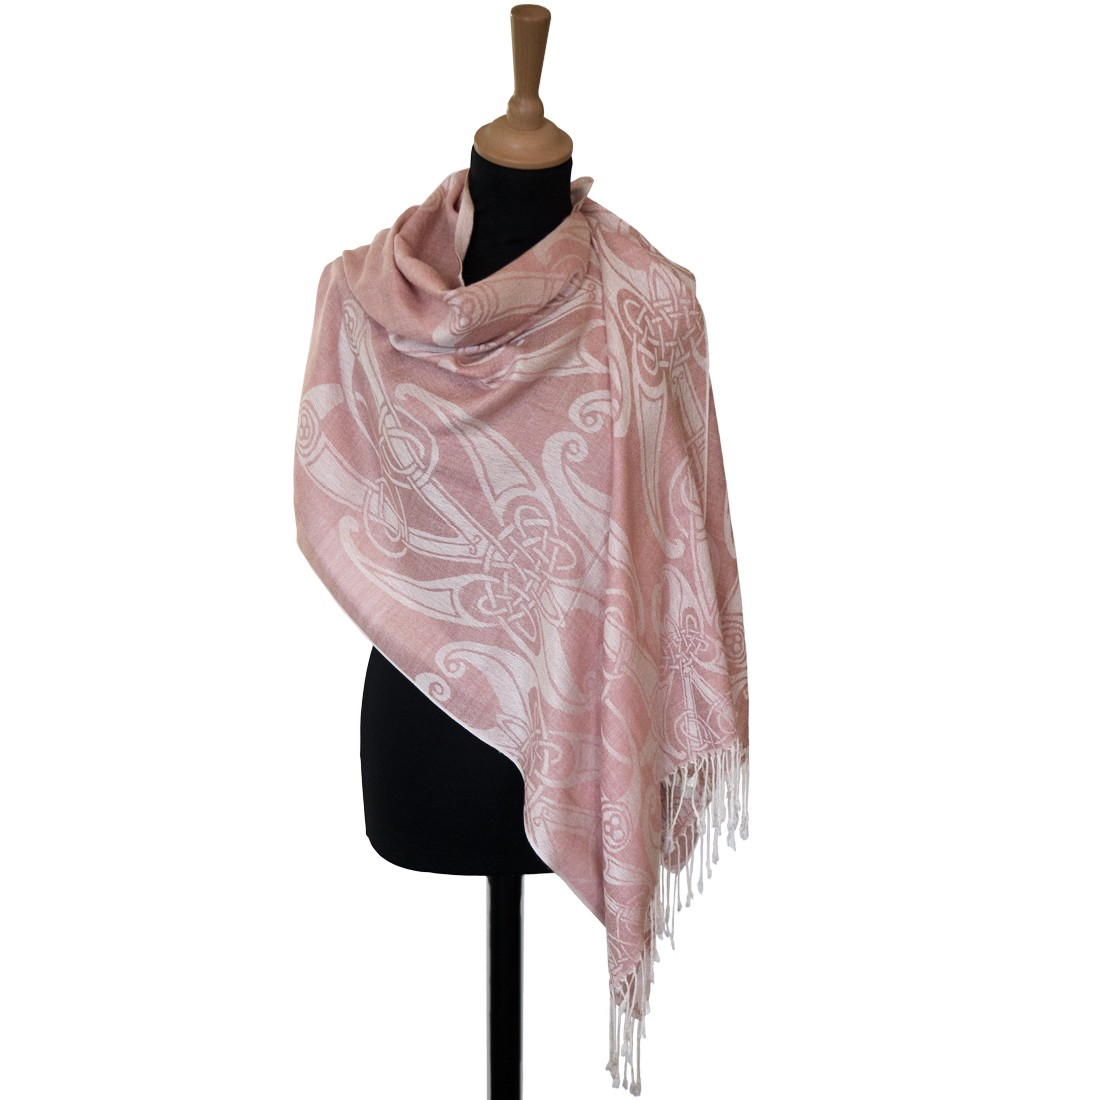 BLUSH BOOK OF KELLS MOTIF PASHMINA SCARF